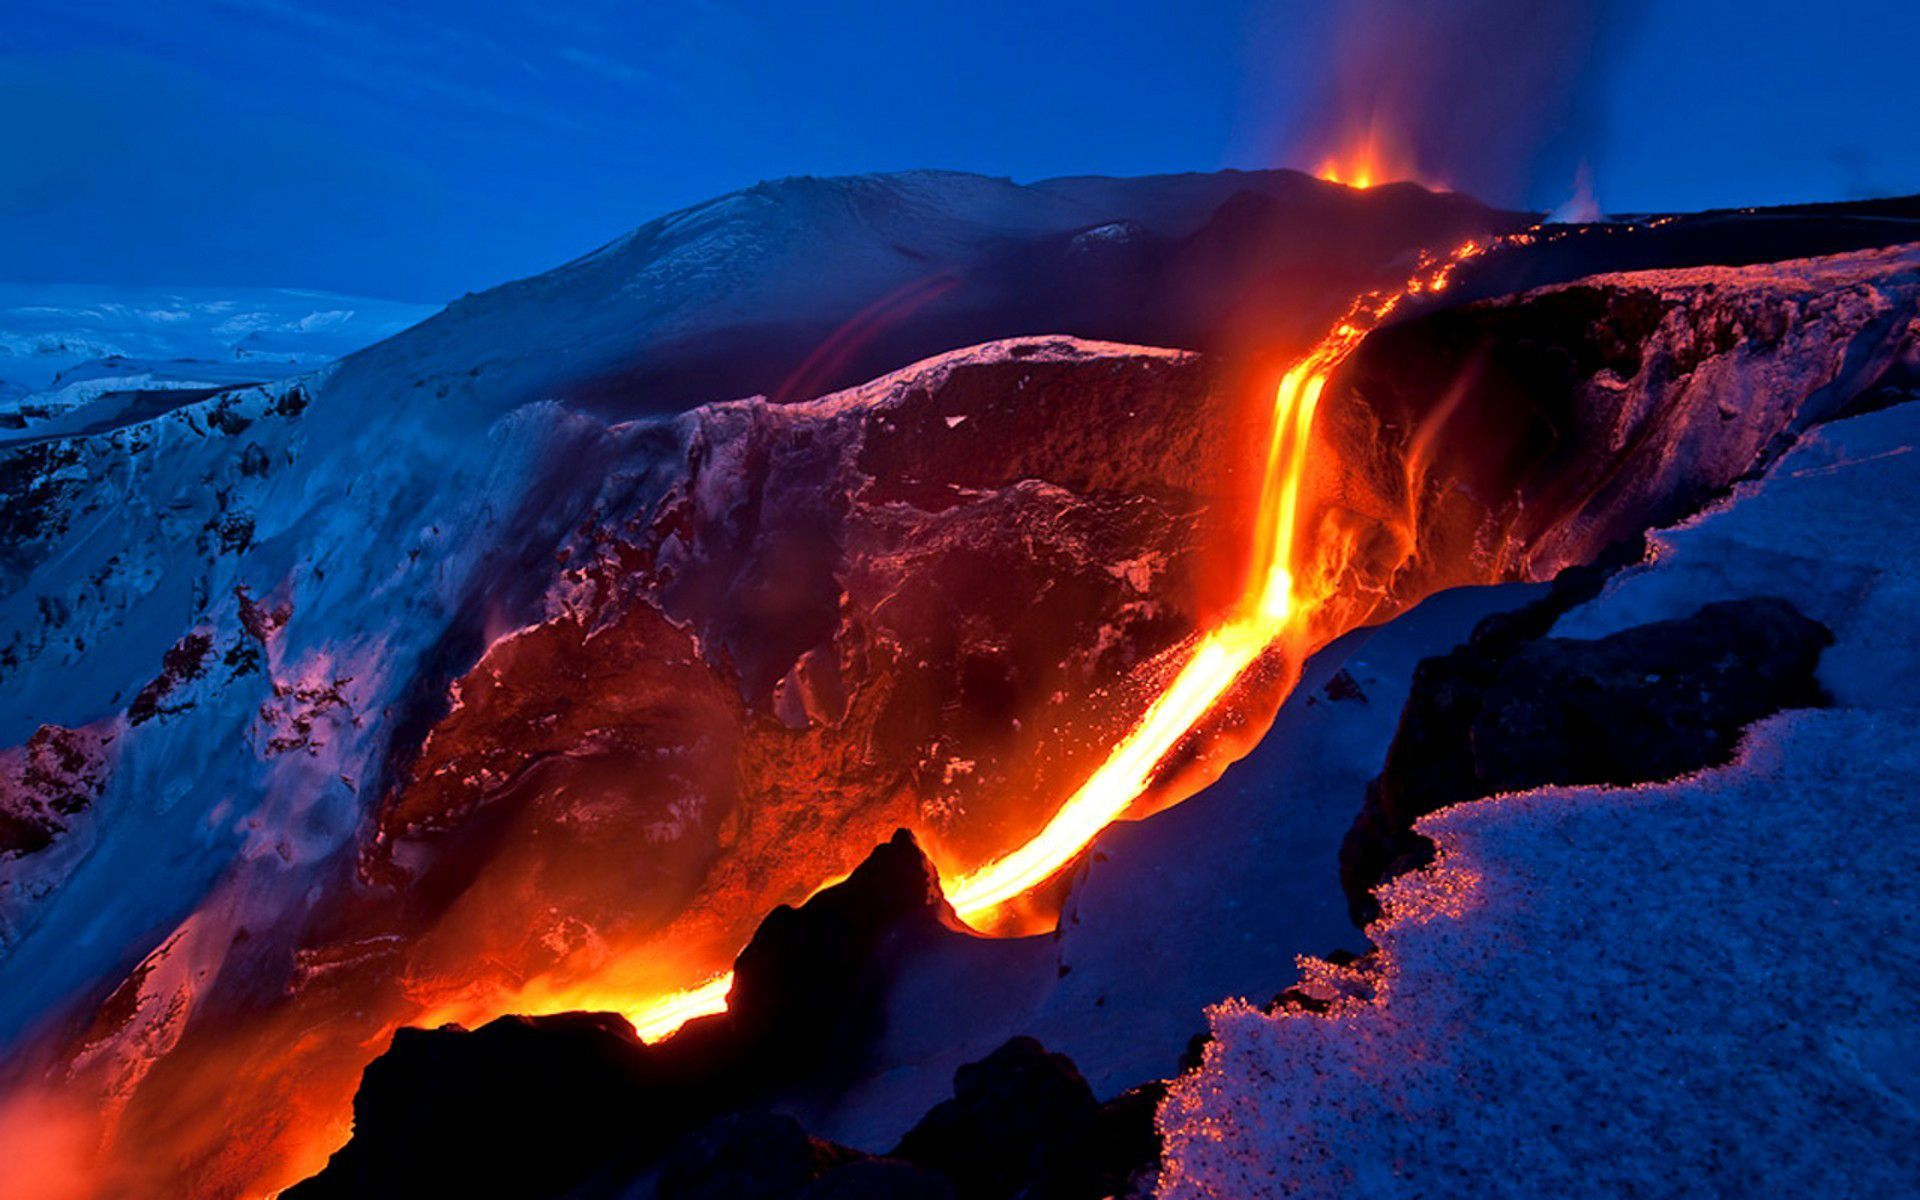 Iceland Volcano Wallpapers   Top Iceland Volcano Backgrounds 1920x1200